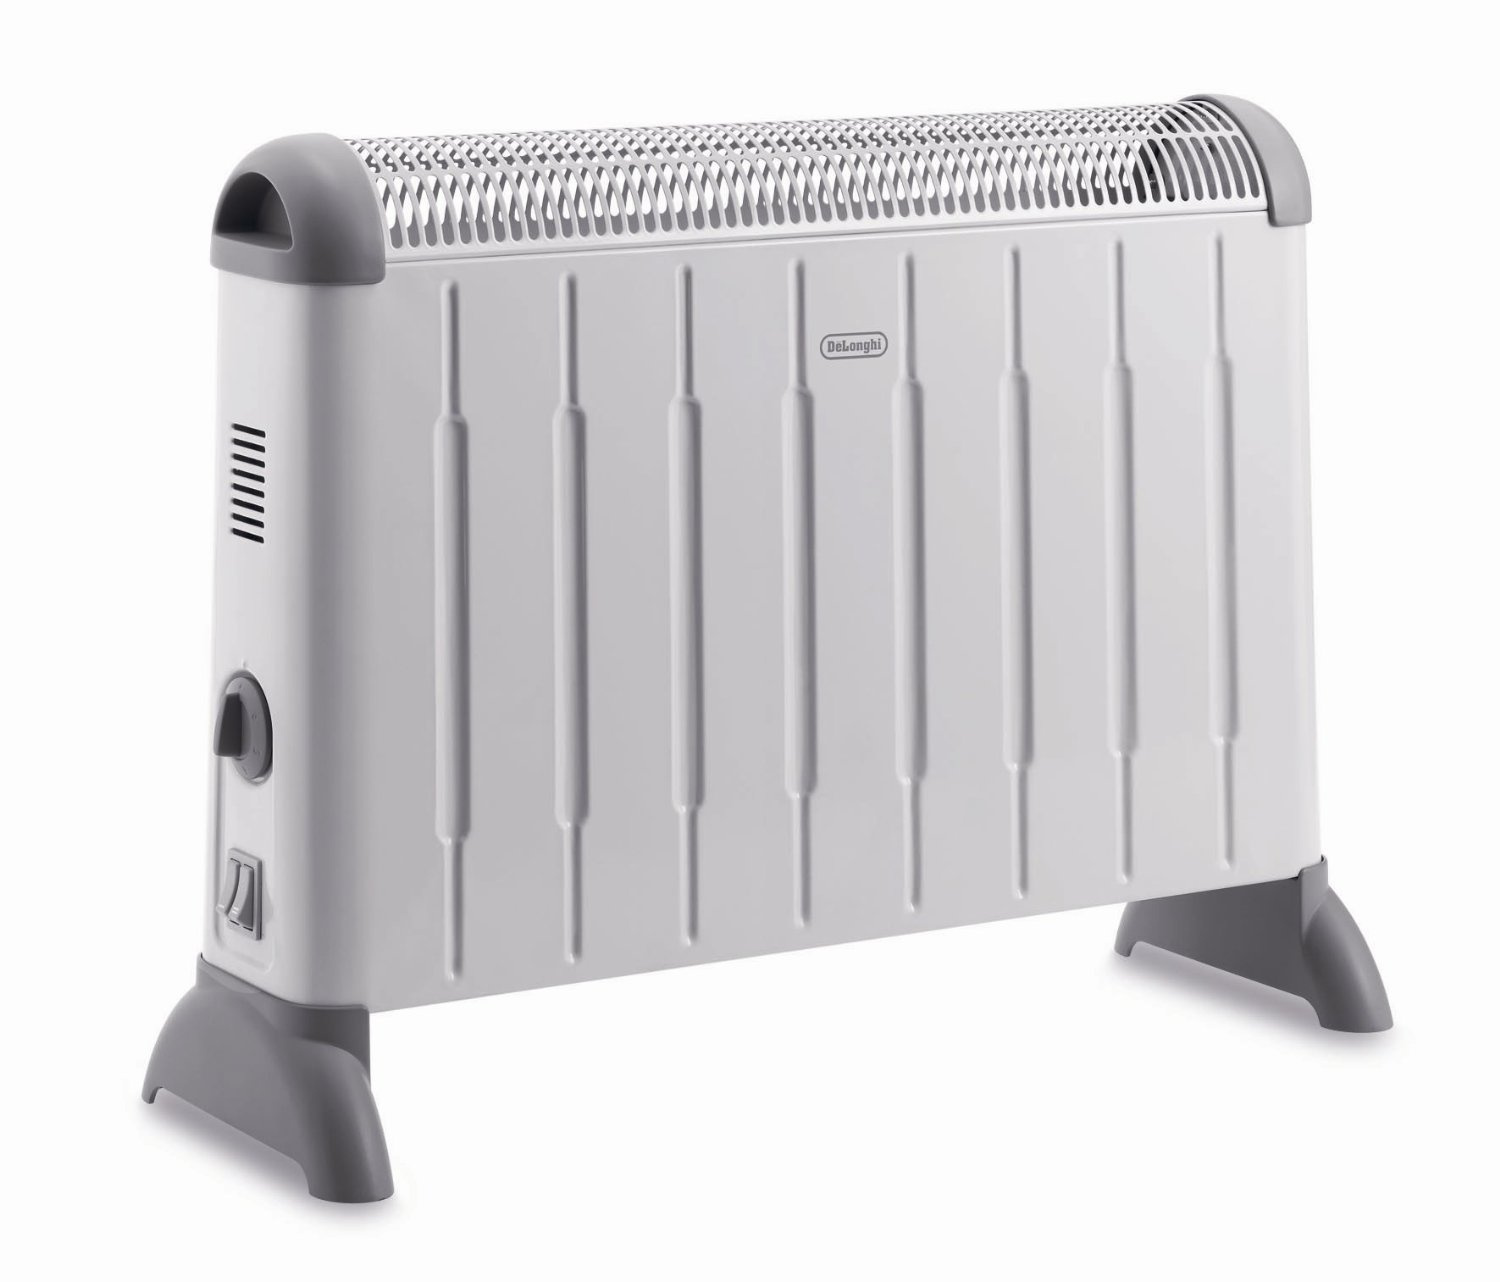 Oil heater or convector - which is better Specifications, comparison, reviews 6